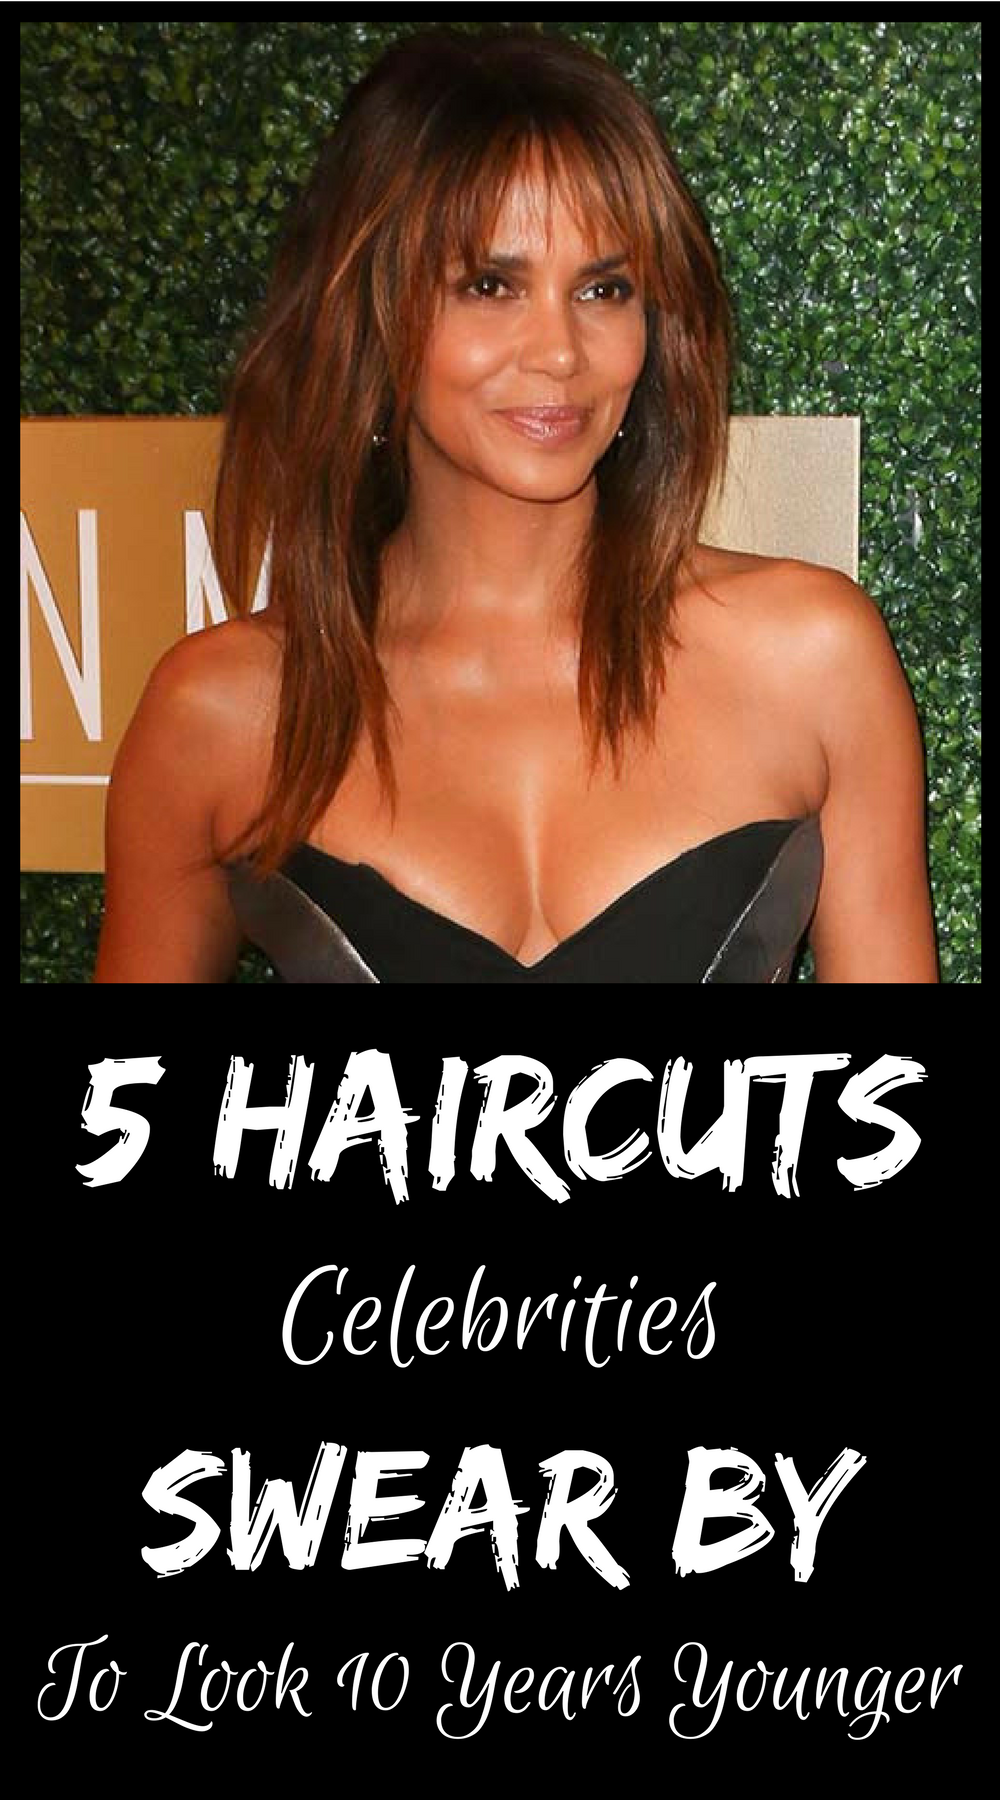 5 Haircuts Celebrities Swear By To Look 10 Years Younger